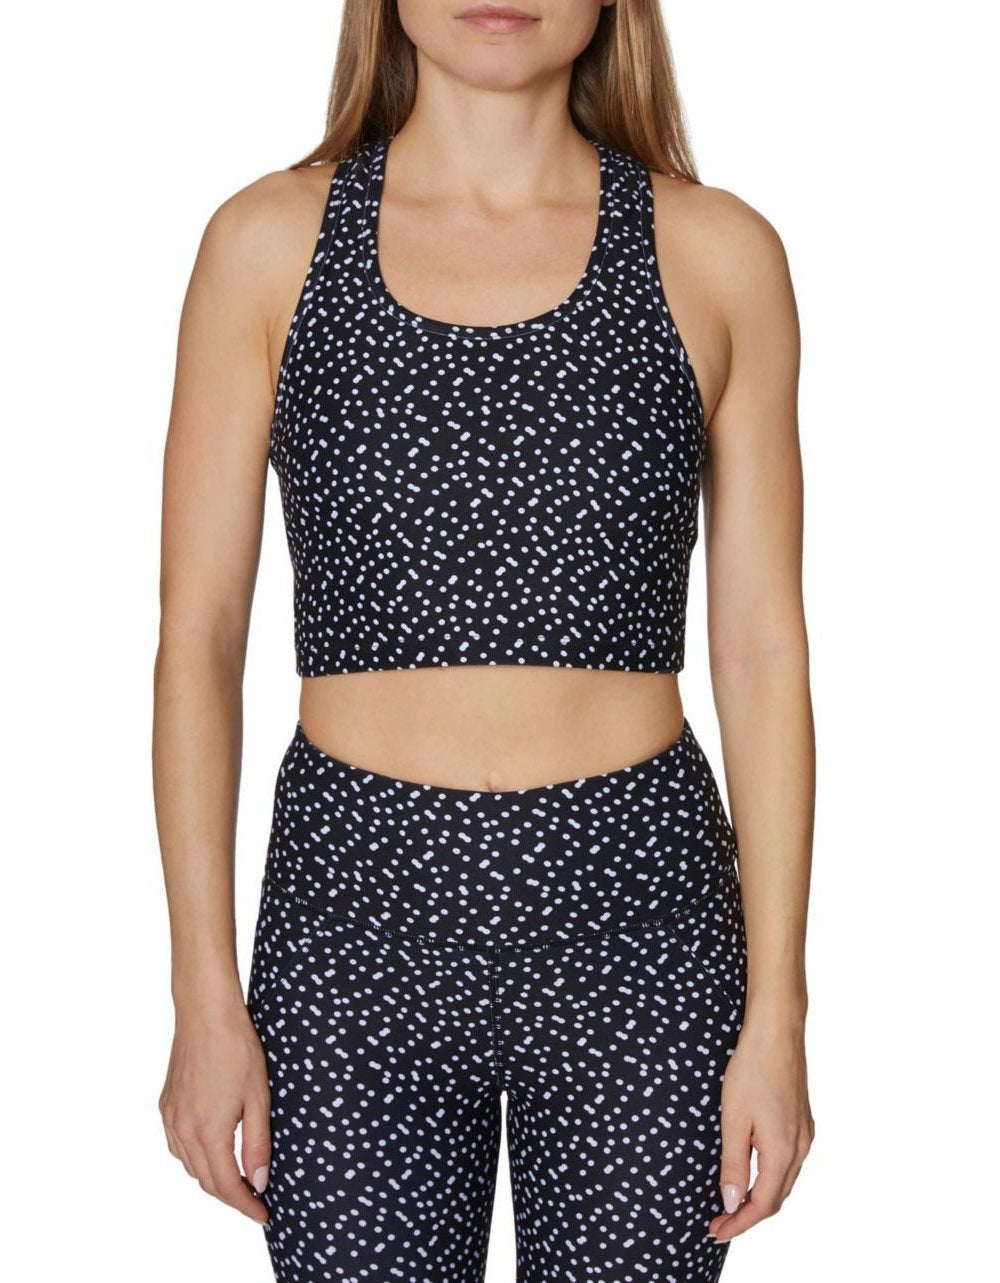 DOUBLE POLKA DOTS LONG LINE BRA BLACK-WHITE - APPAREL - Betsey Johnson